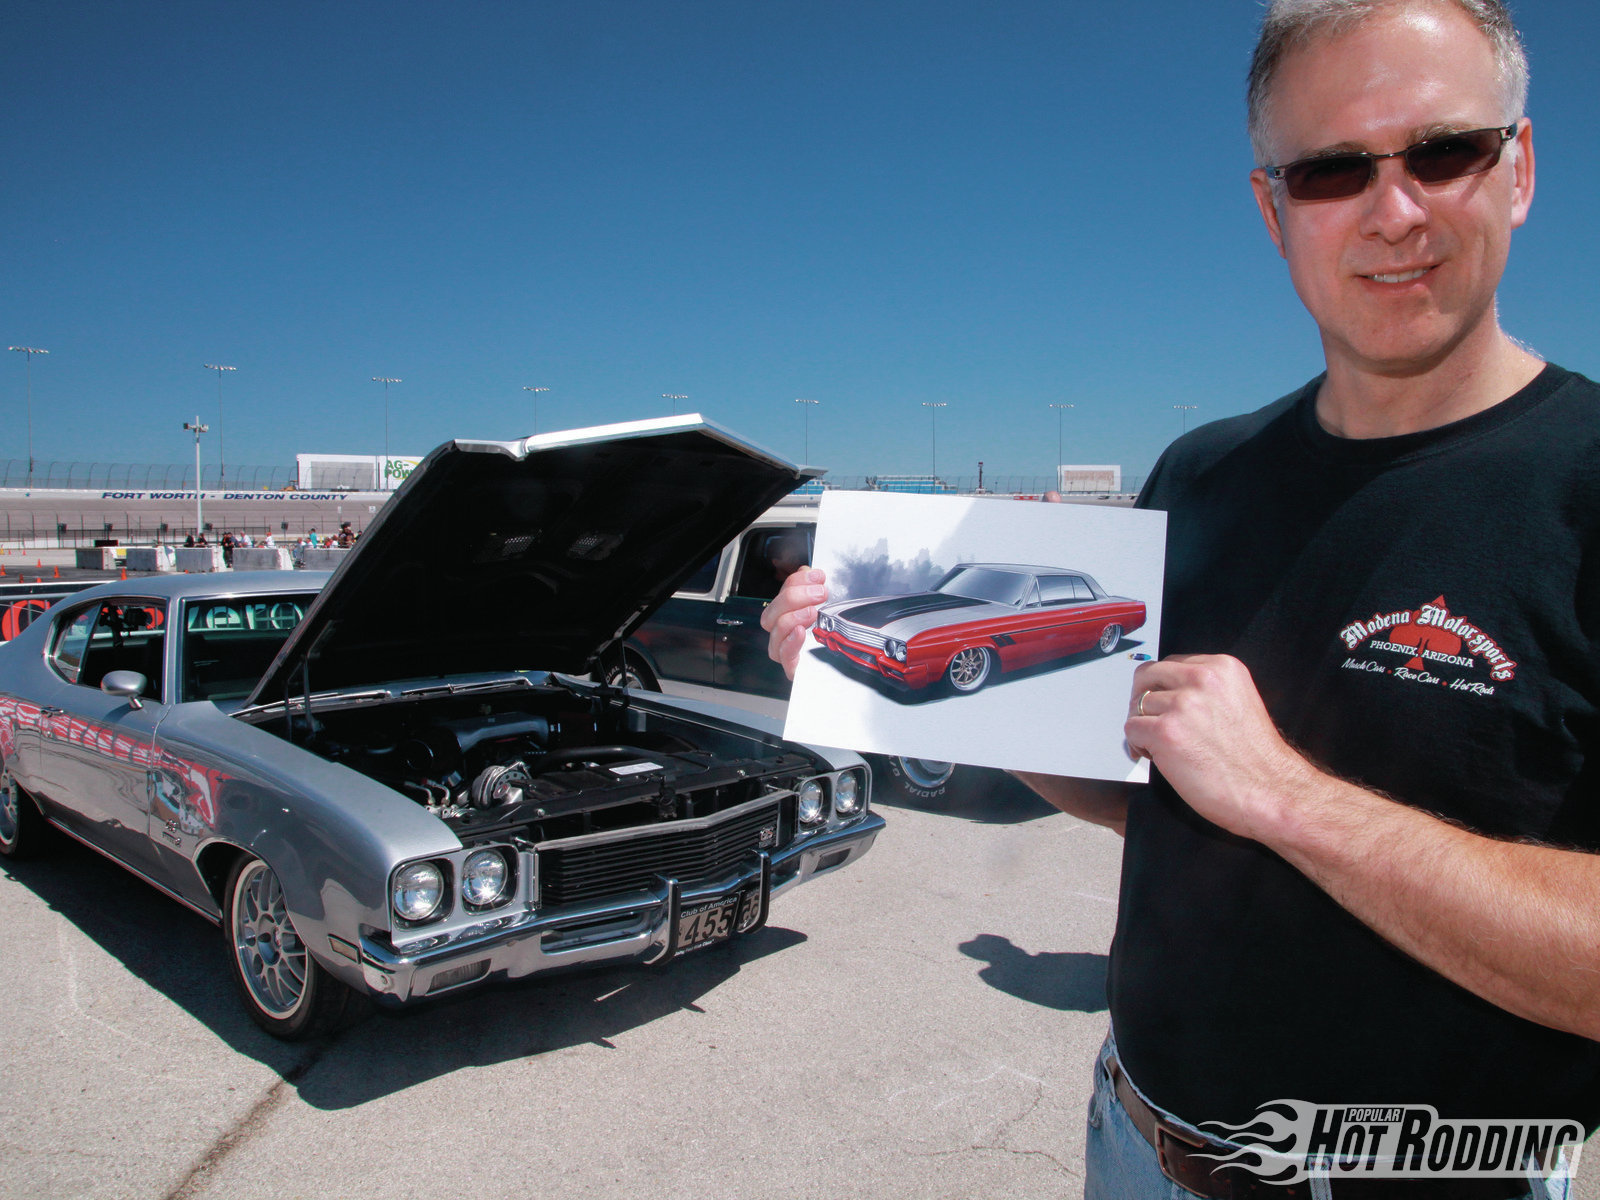 Jeff Peoples (Ridgeland, Mississippi) is a regular at the Fort Worth Street Machine autocross with his current ride, a fuel-injected 455-powered Buick Gran Sport, but he showed us a rendering of his newest project, a 1964 Buick Skylark that's in the works. Jeff says to watch for it in our upcoming Readers' Projects issue!